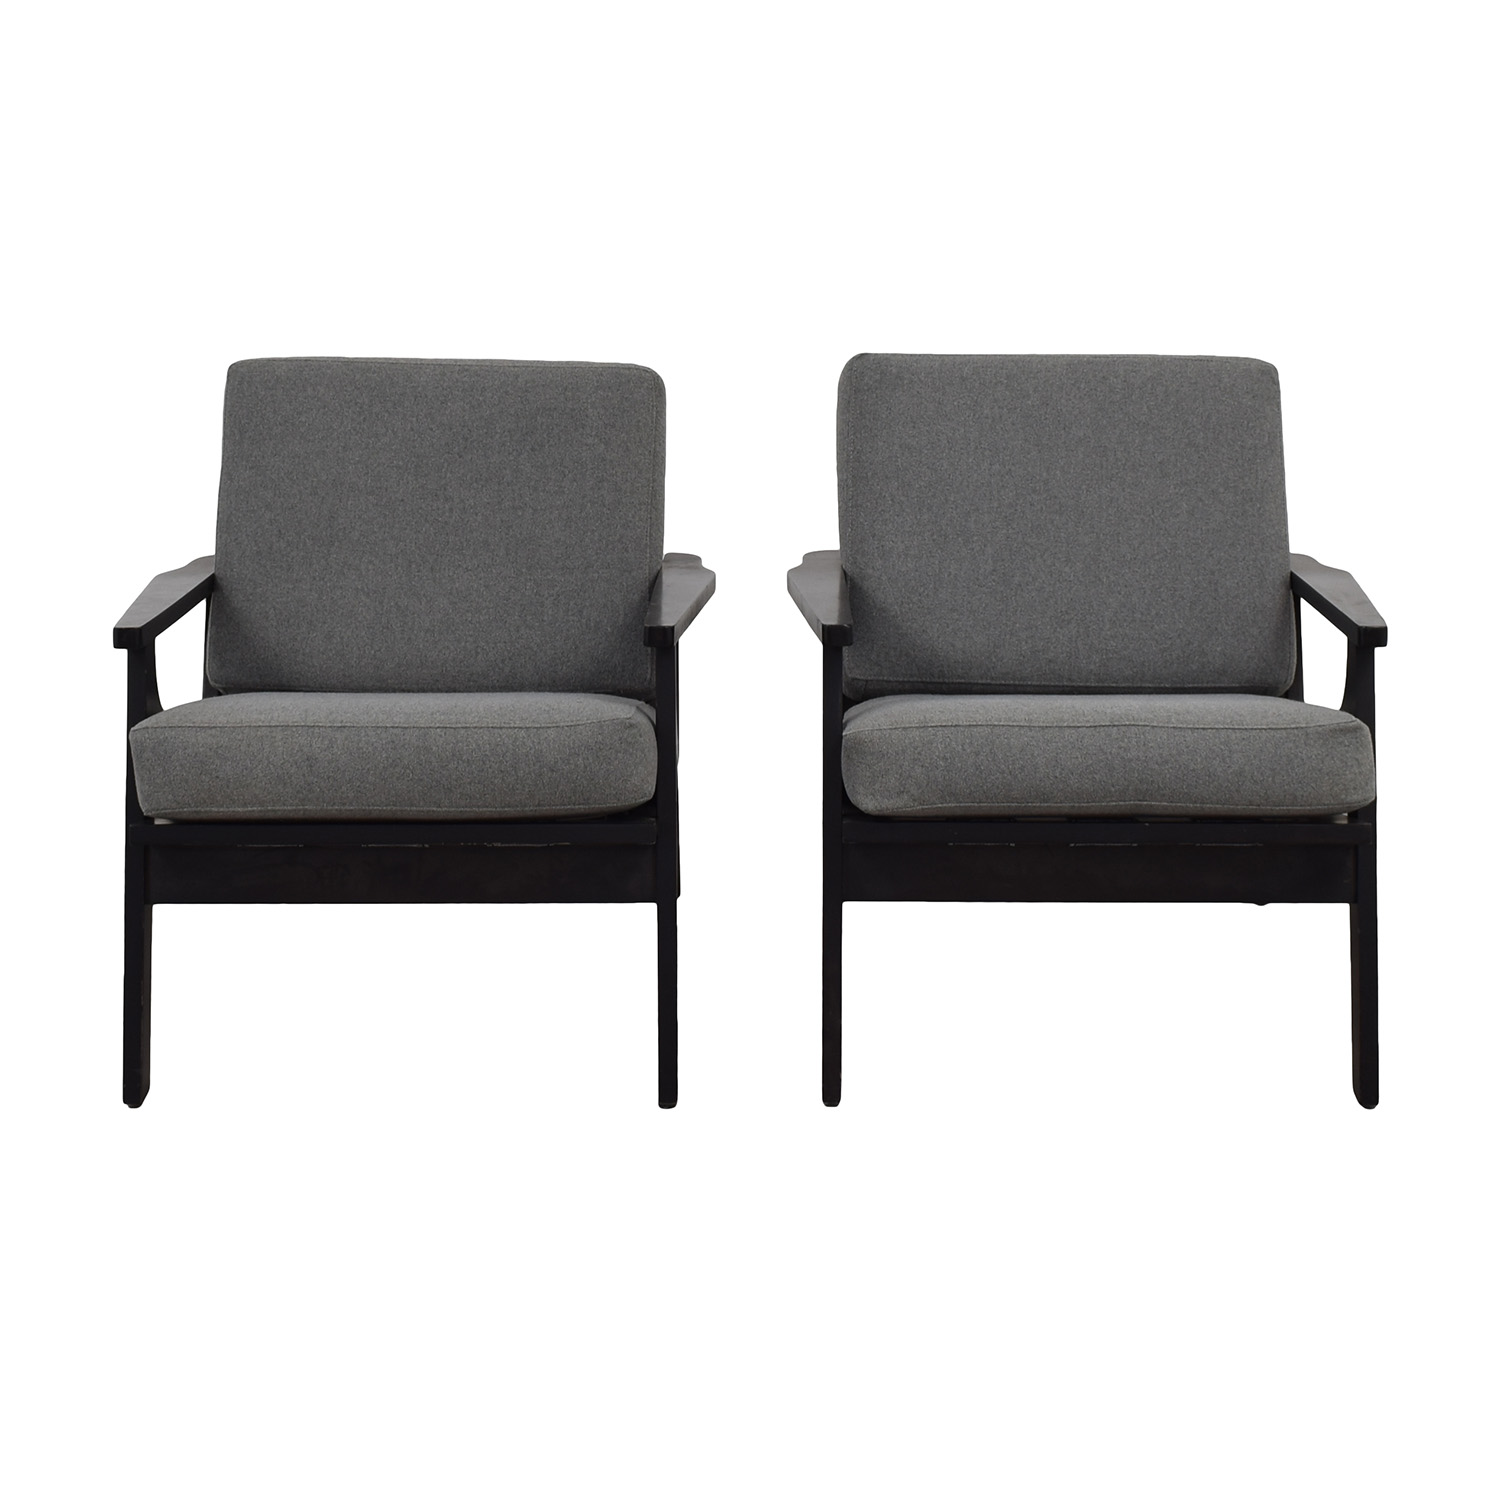 Room & Board Room & Board Sanna Gray Accent Chairs second hand